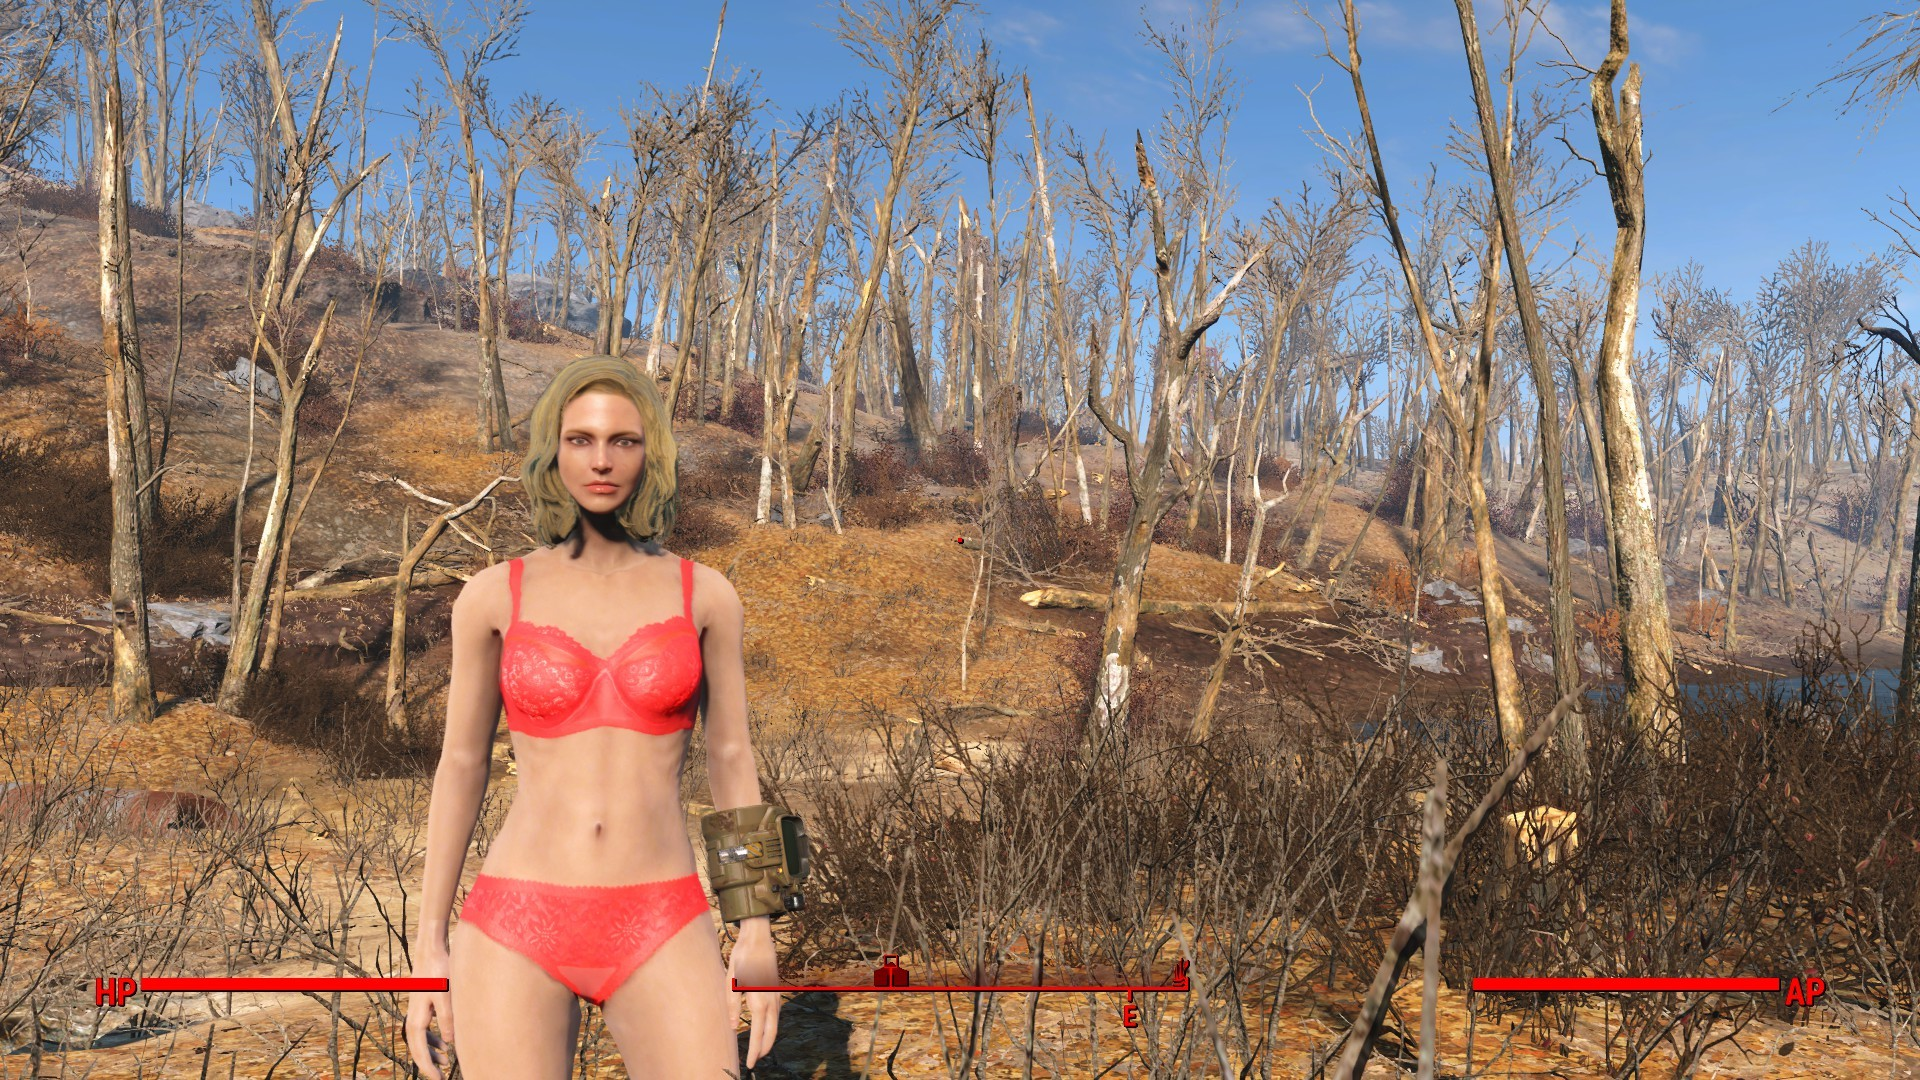 … Fallout 4 – Sexy Lingerie by RobinOlsen2011